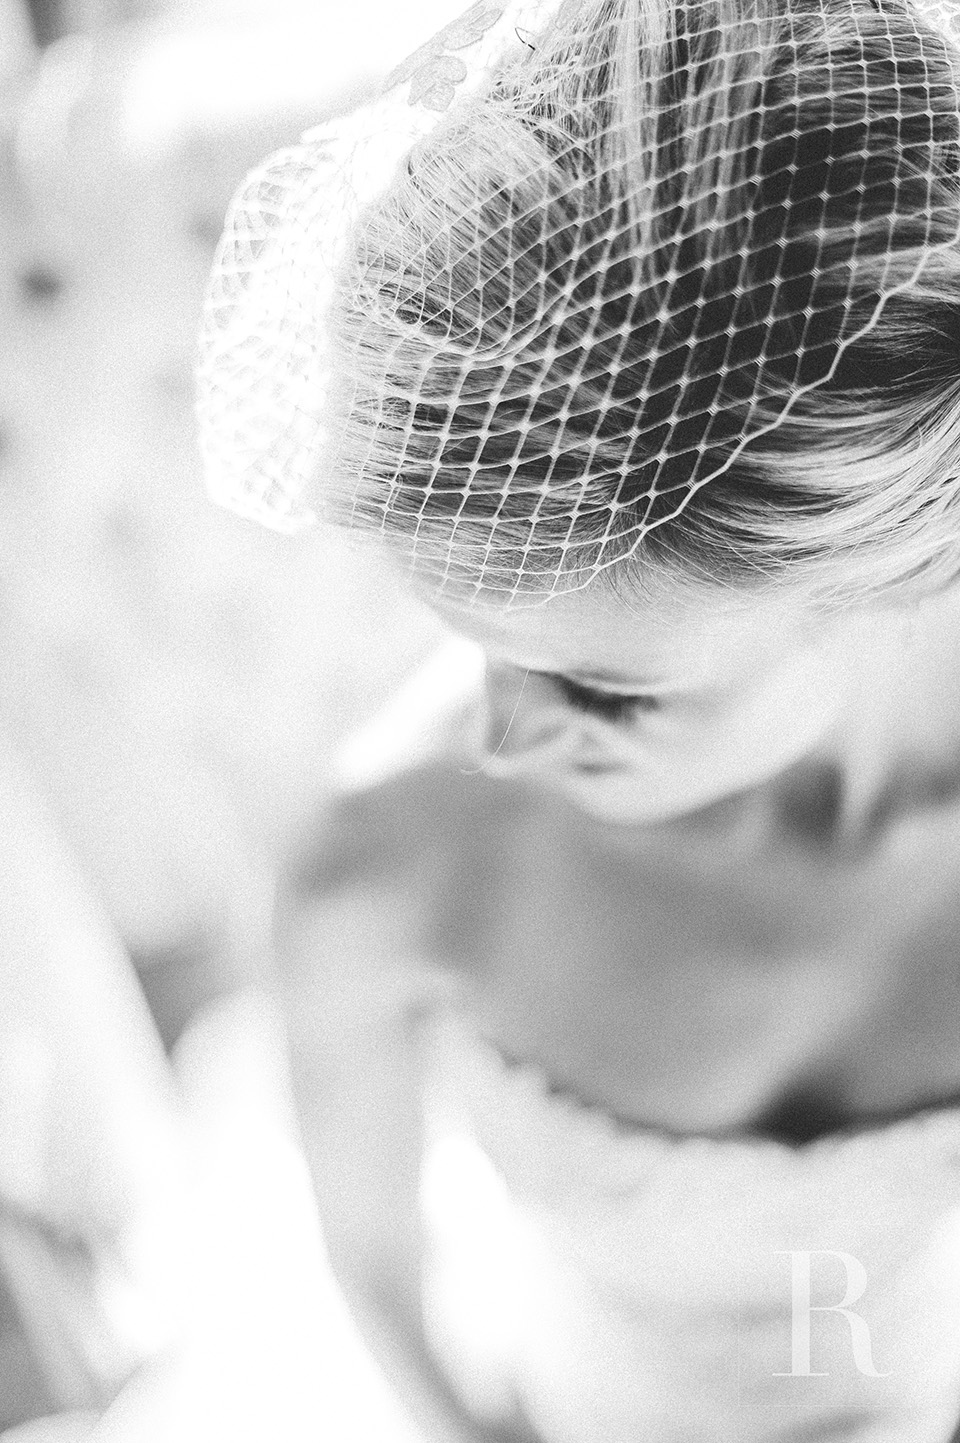 RYAN PARKER PHOTOGRAPHY_WEDDINGS_JOHANNESBURG_MORRELLS_M&M DSC_2644.jpg